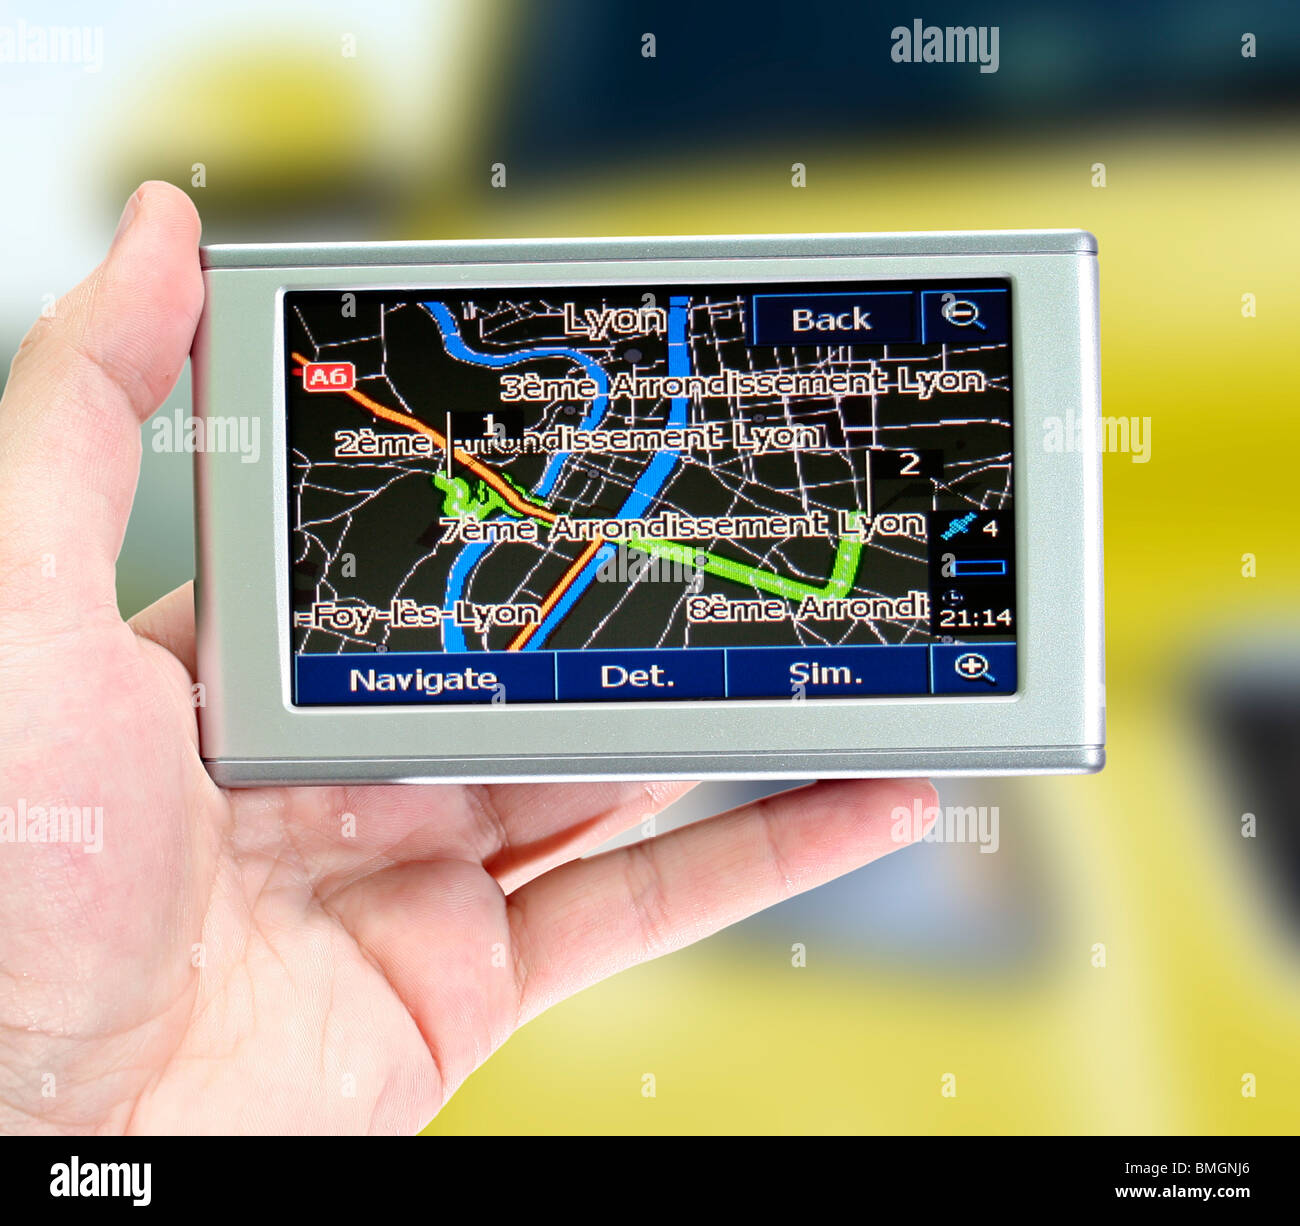 7 way navigation craftsman lawn tractor parts diagram gps in a man hand find your stock photo royalty